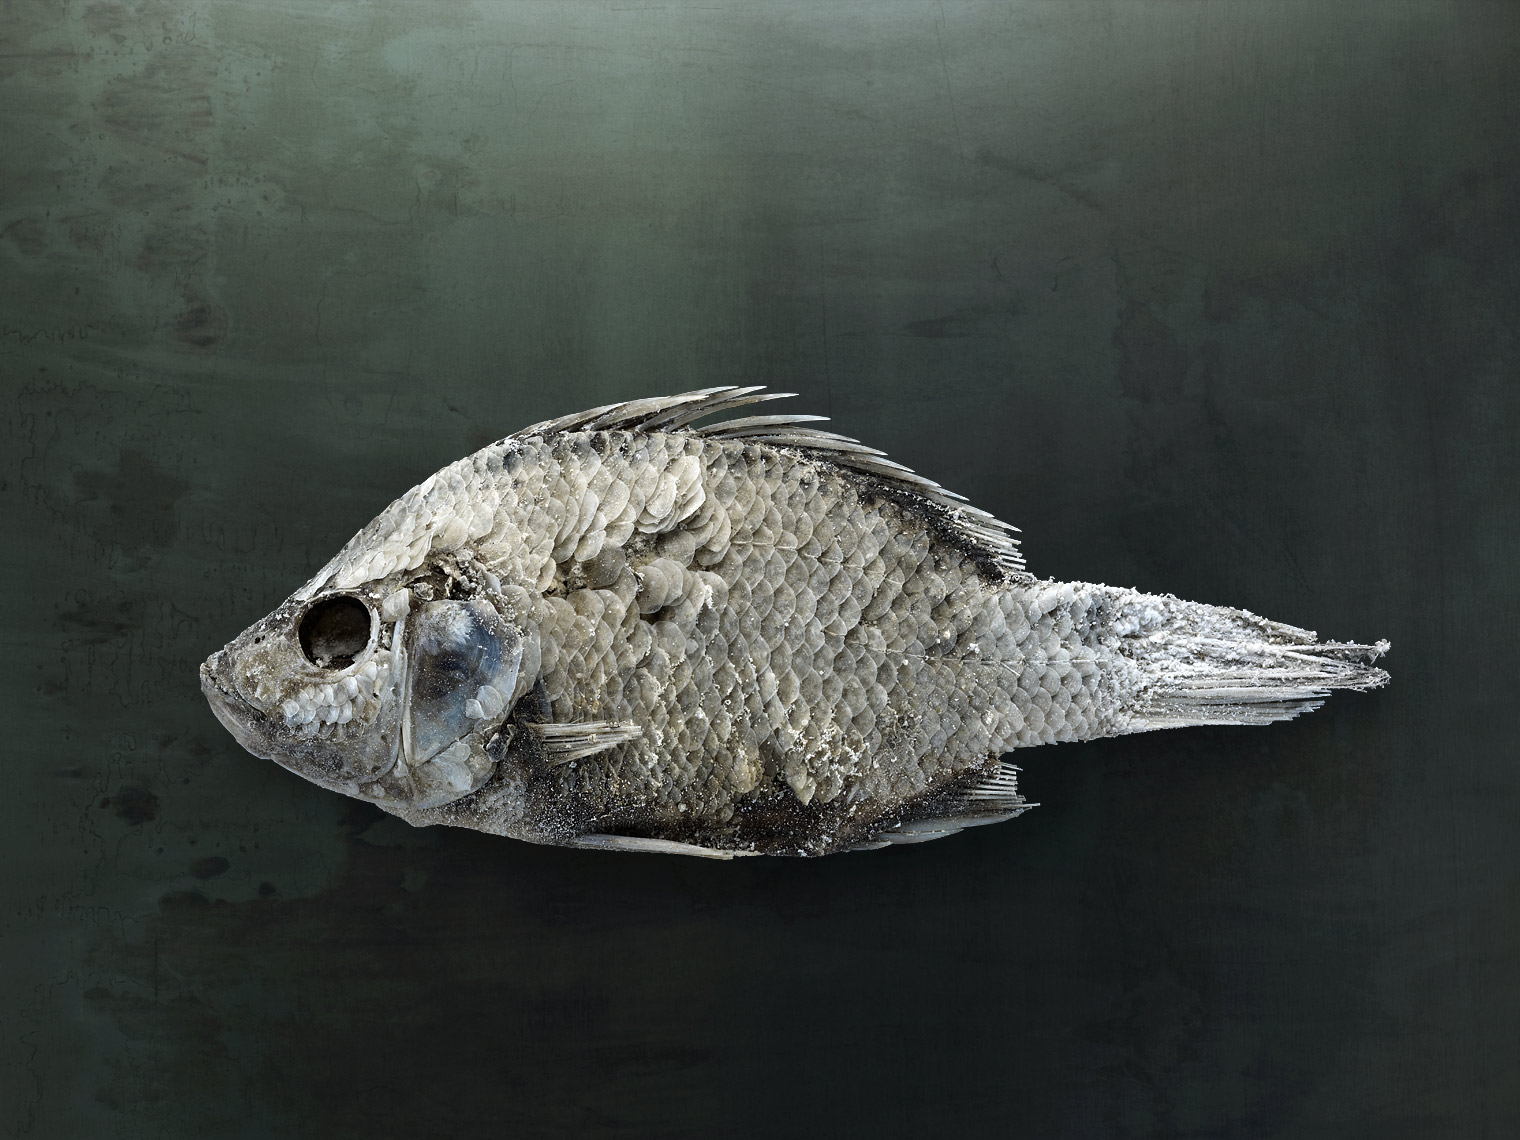 Salton Sea fish still life by animal photographer Brad Wilson